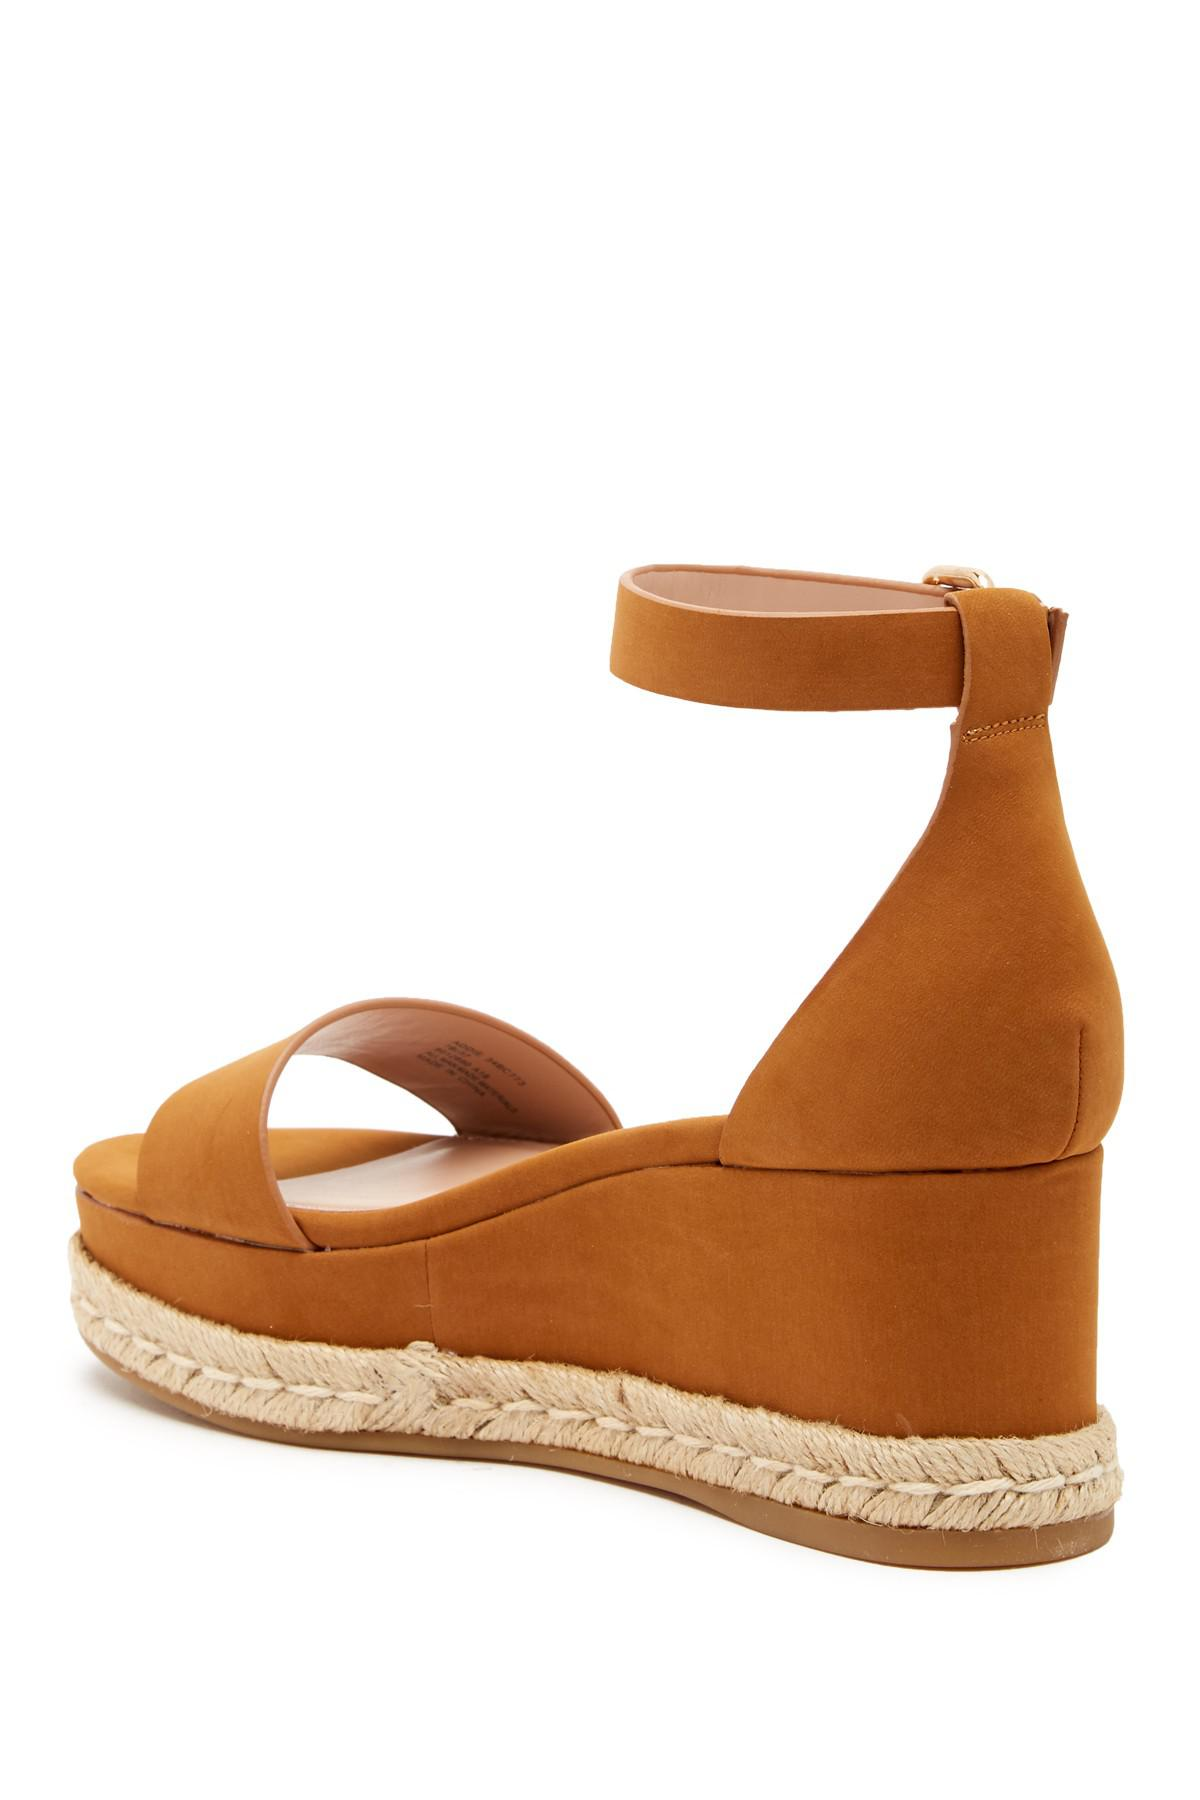 91642c95c6a Lyst - BCBGeneration Addie Wedge Sandal in Brown